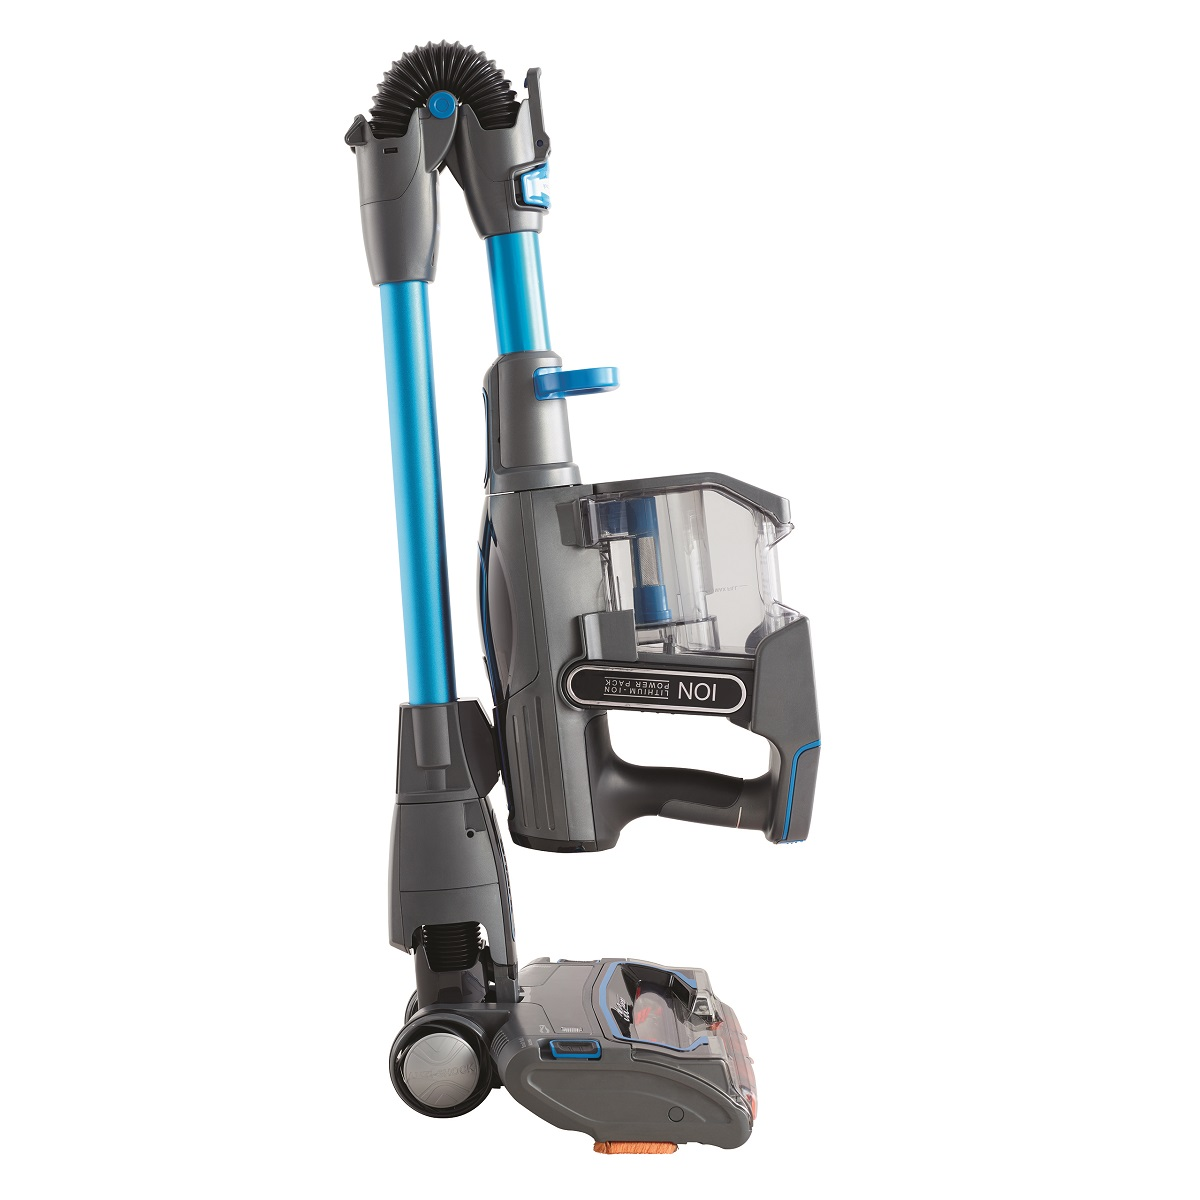 Shark Duoclean Cordless Vacuum Cleaner Review Droidhorizon